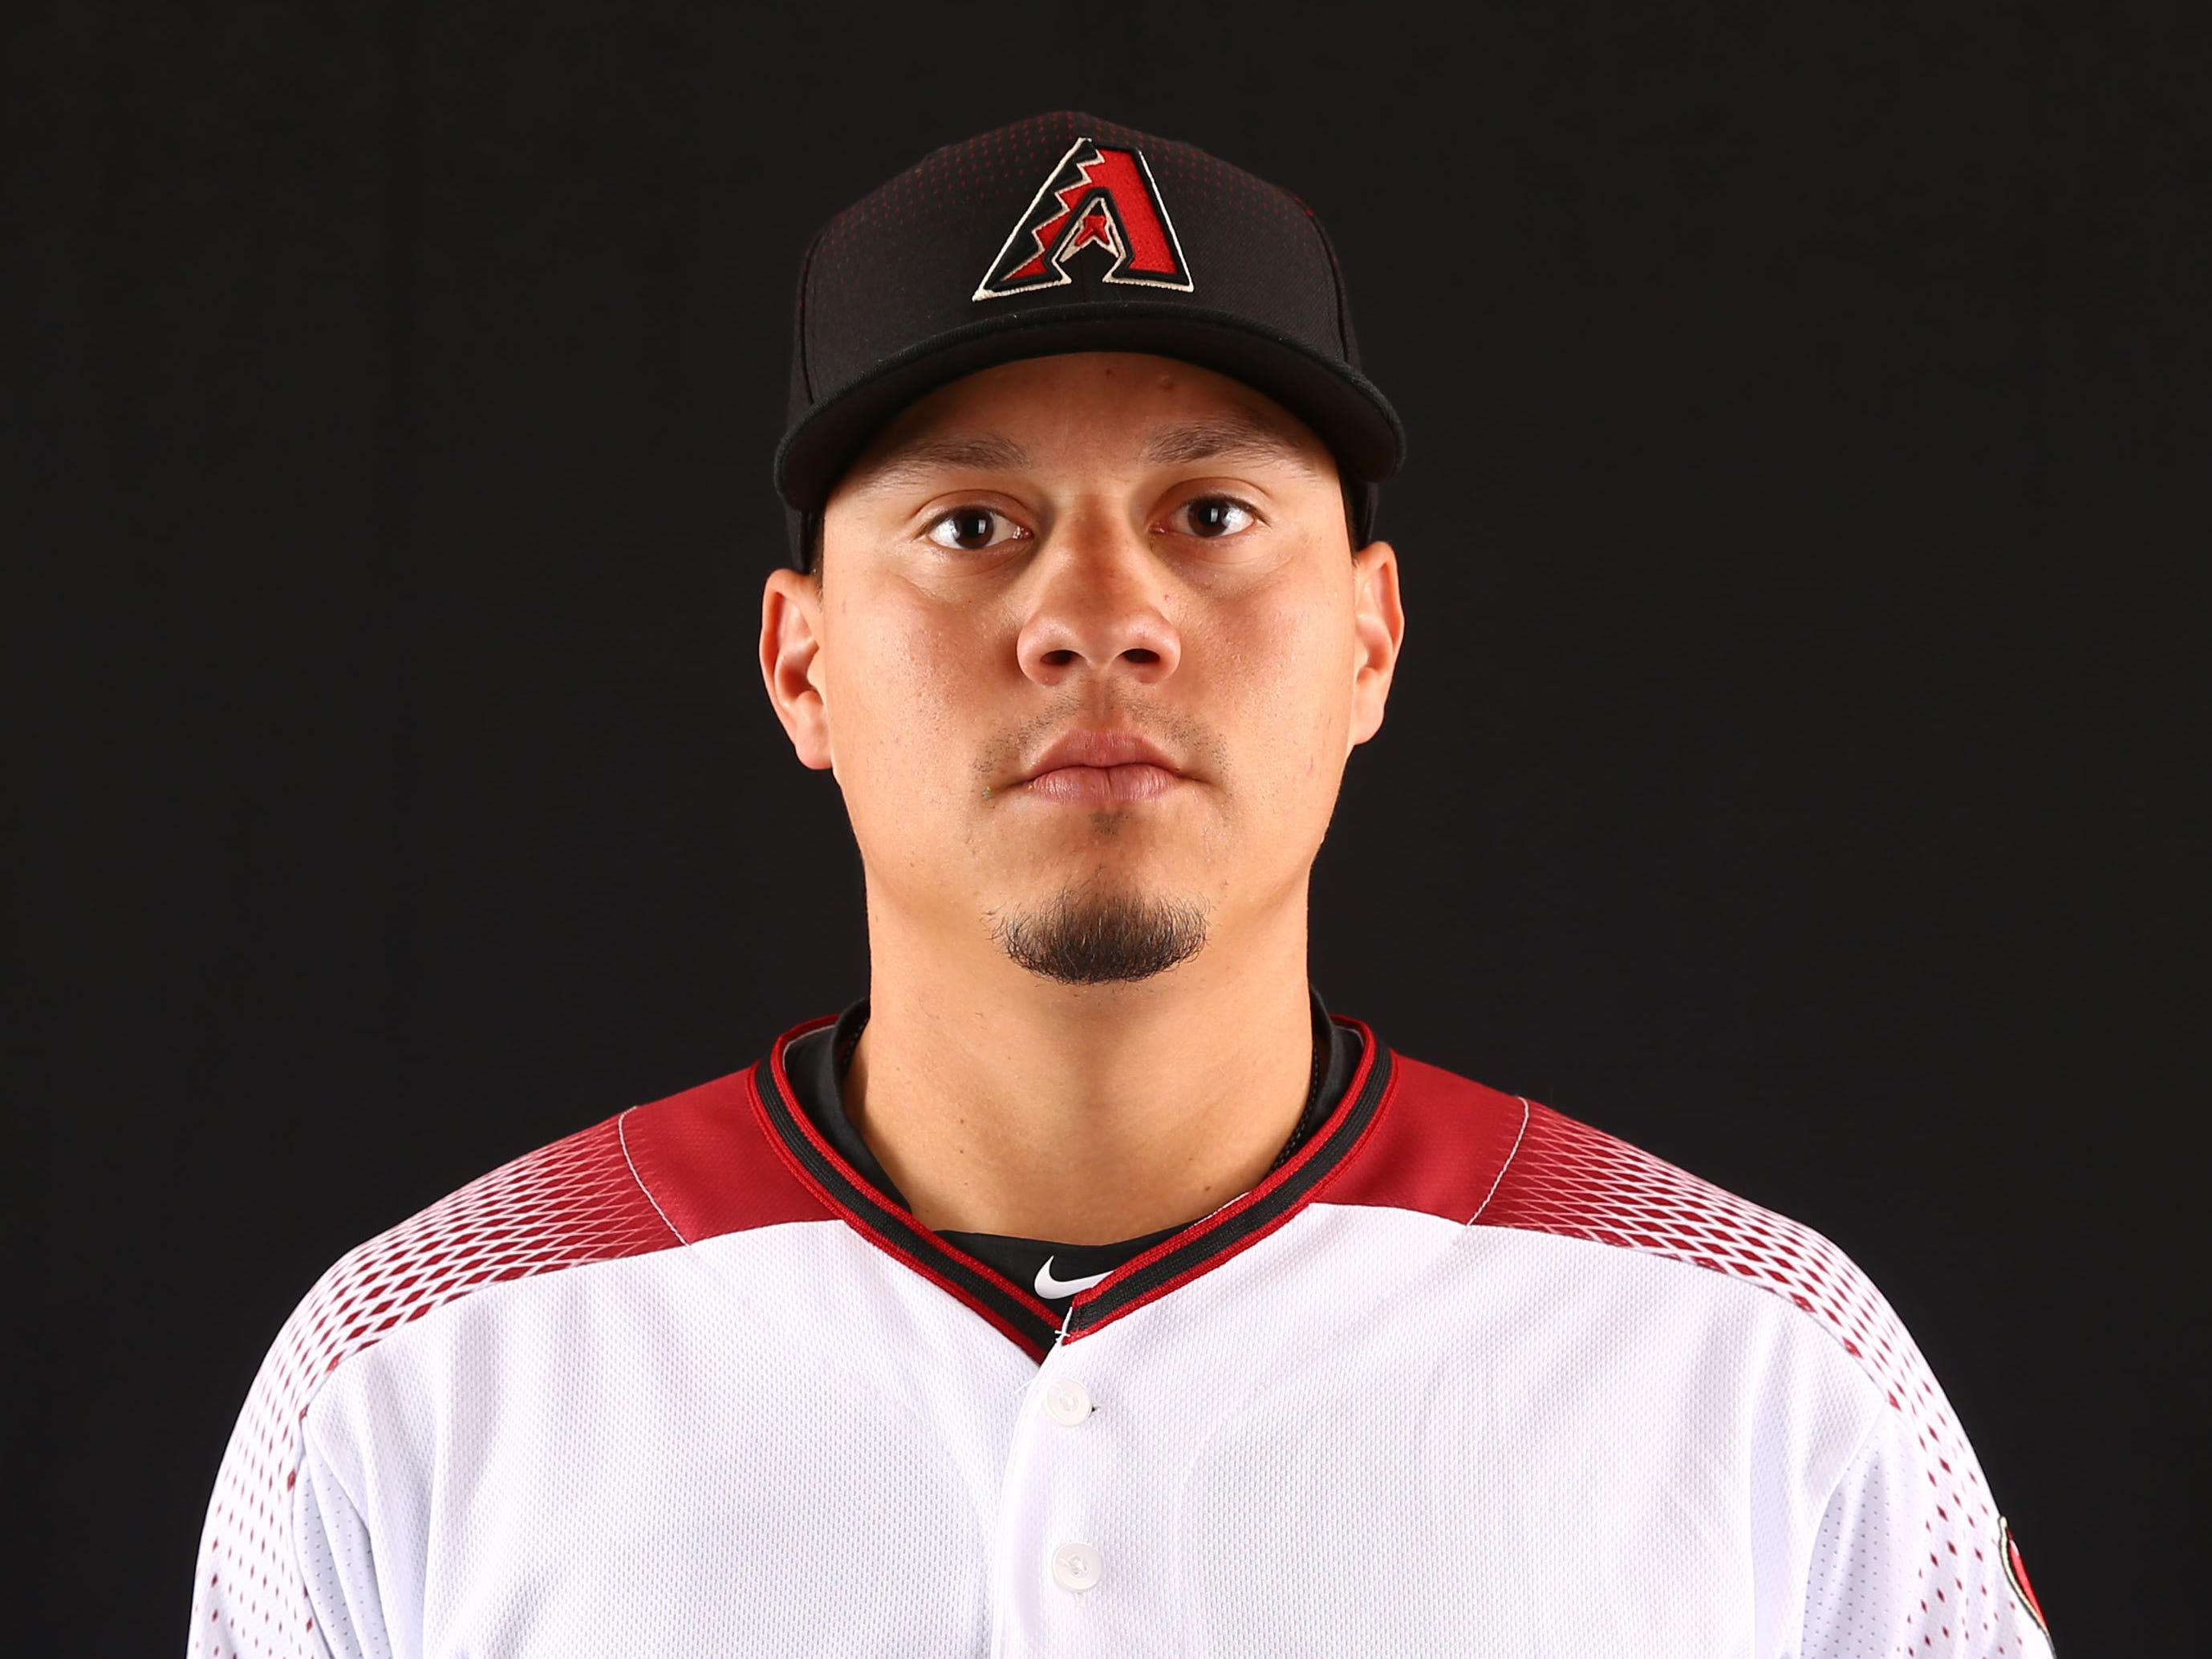 Wilmer Flores of the Arizona Diamondbacks poses for a photo during the annual Spring Training Photo Day on Feb. 20 at Salt River Fields in Scottsdale, Ariz.